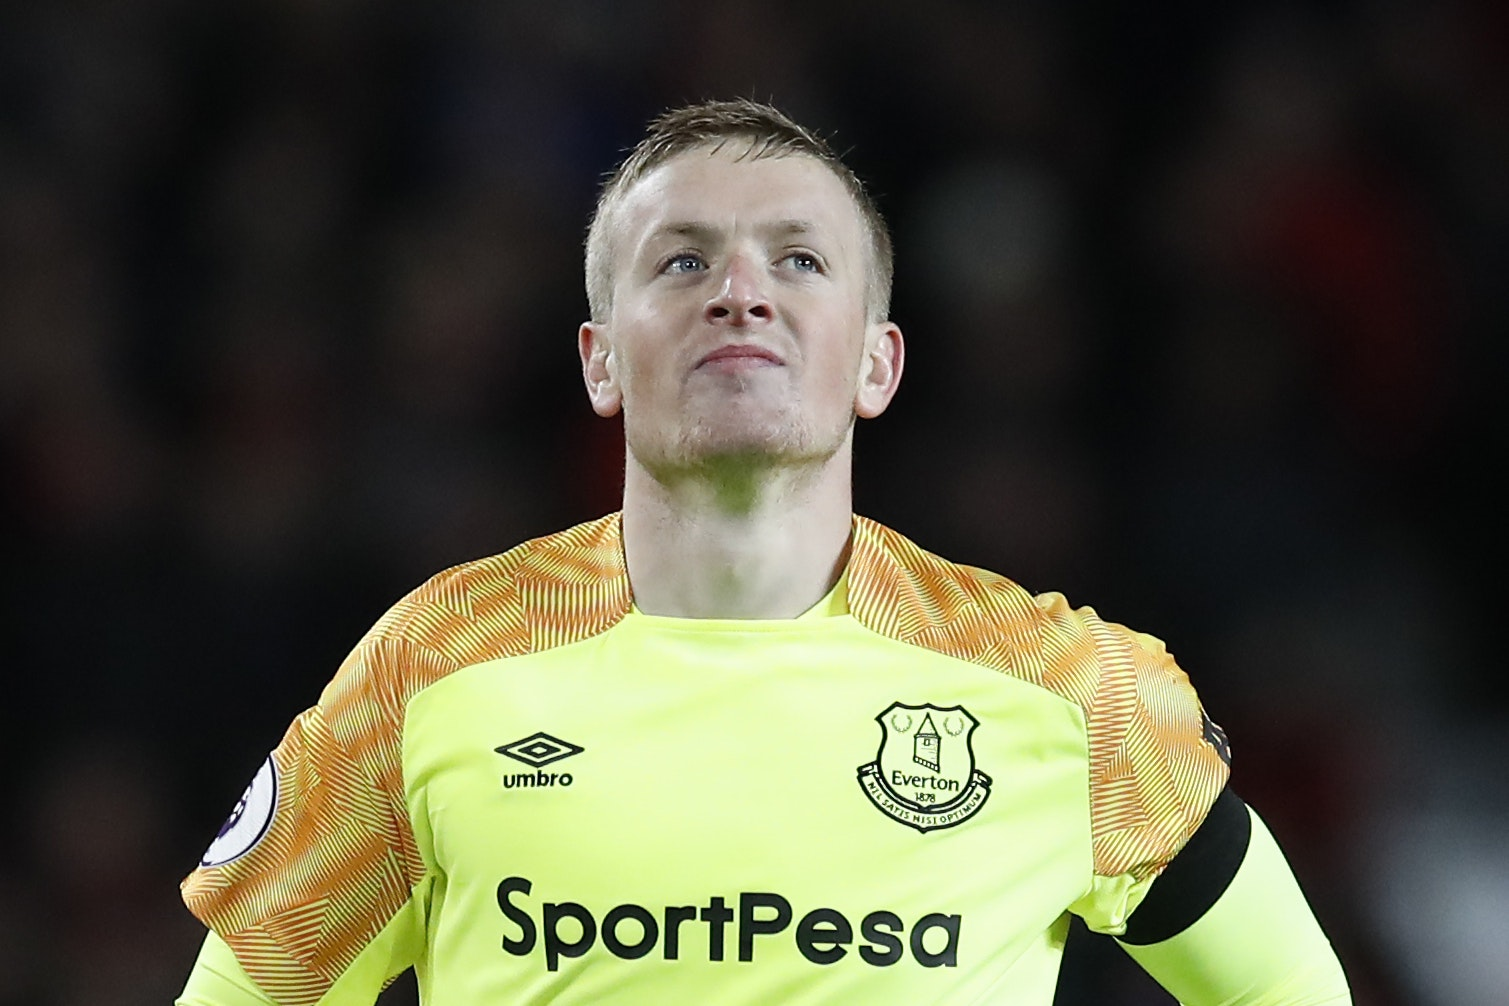 Jordan Pickford was back in action for Everton after his derby blunder